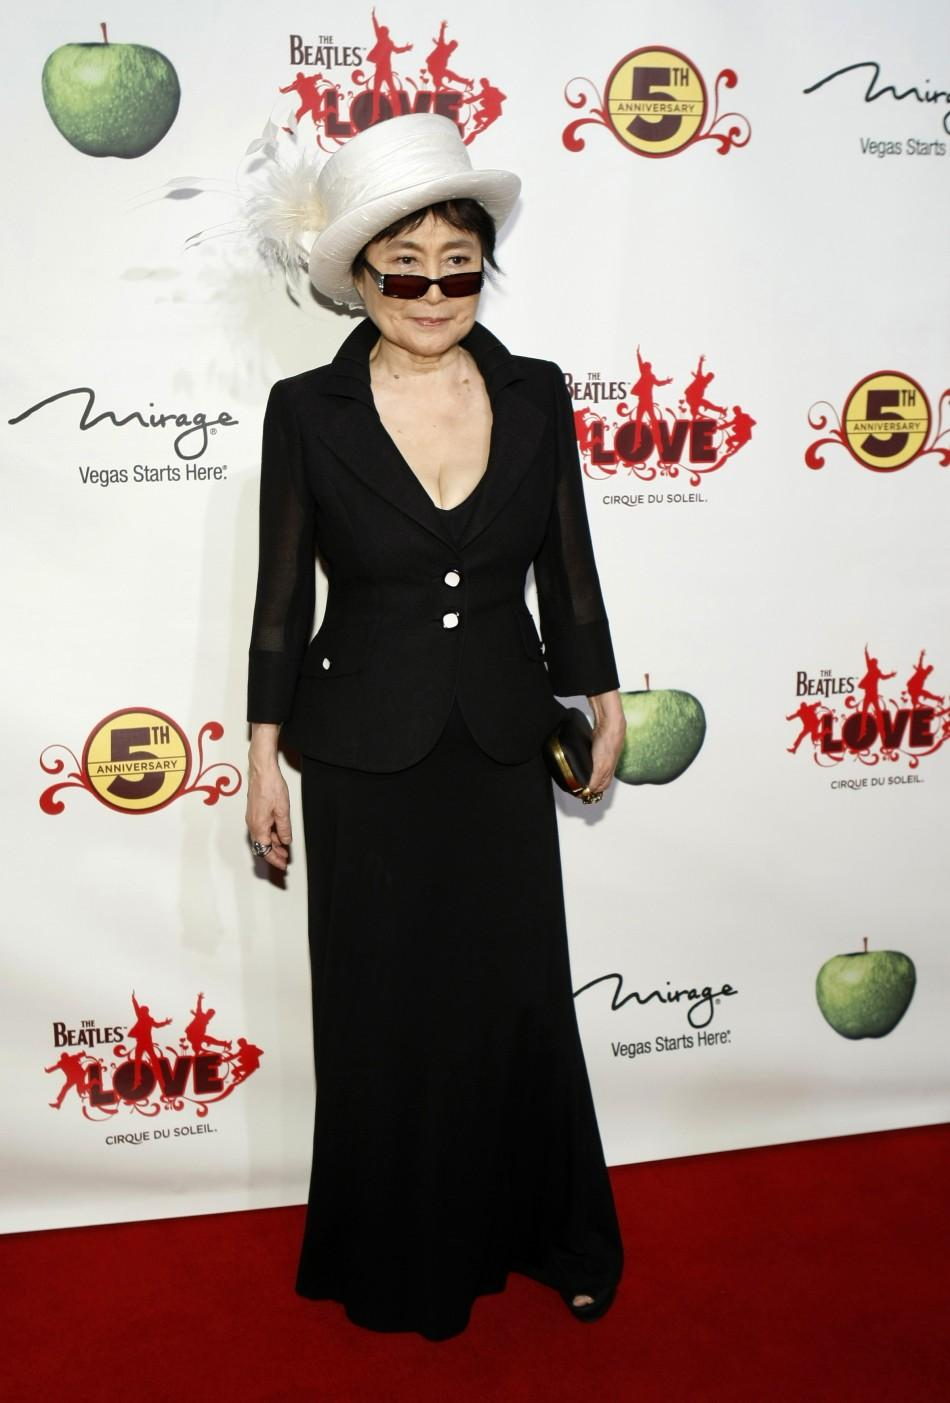 """Yoko Ono arrives for the fifth anniversary celebration of """"The Beatles LOVE by Cirque du Soleil"""" show at the Mirage Hotel and Casino in Las Vegas, Nevada June 8, 2011."""